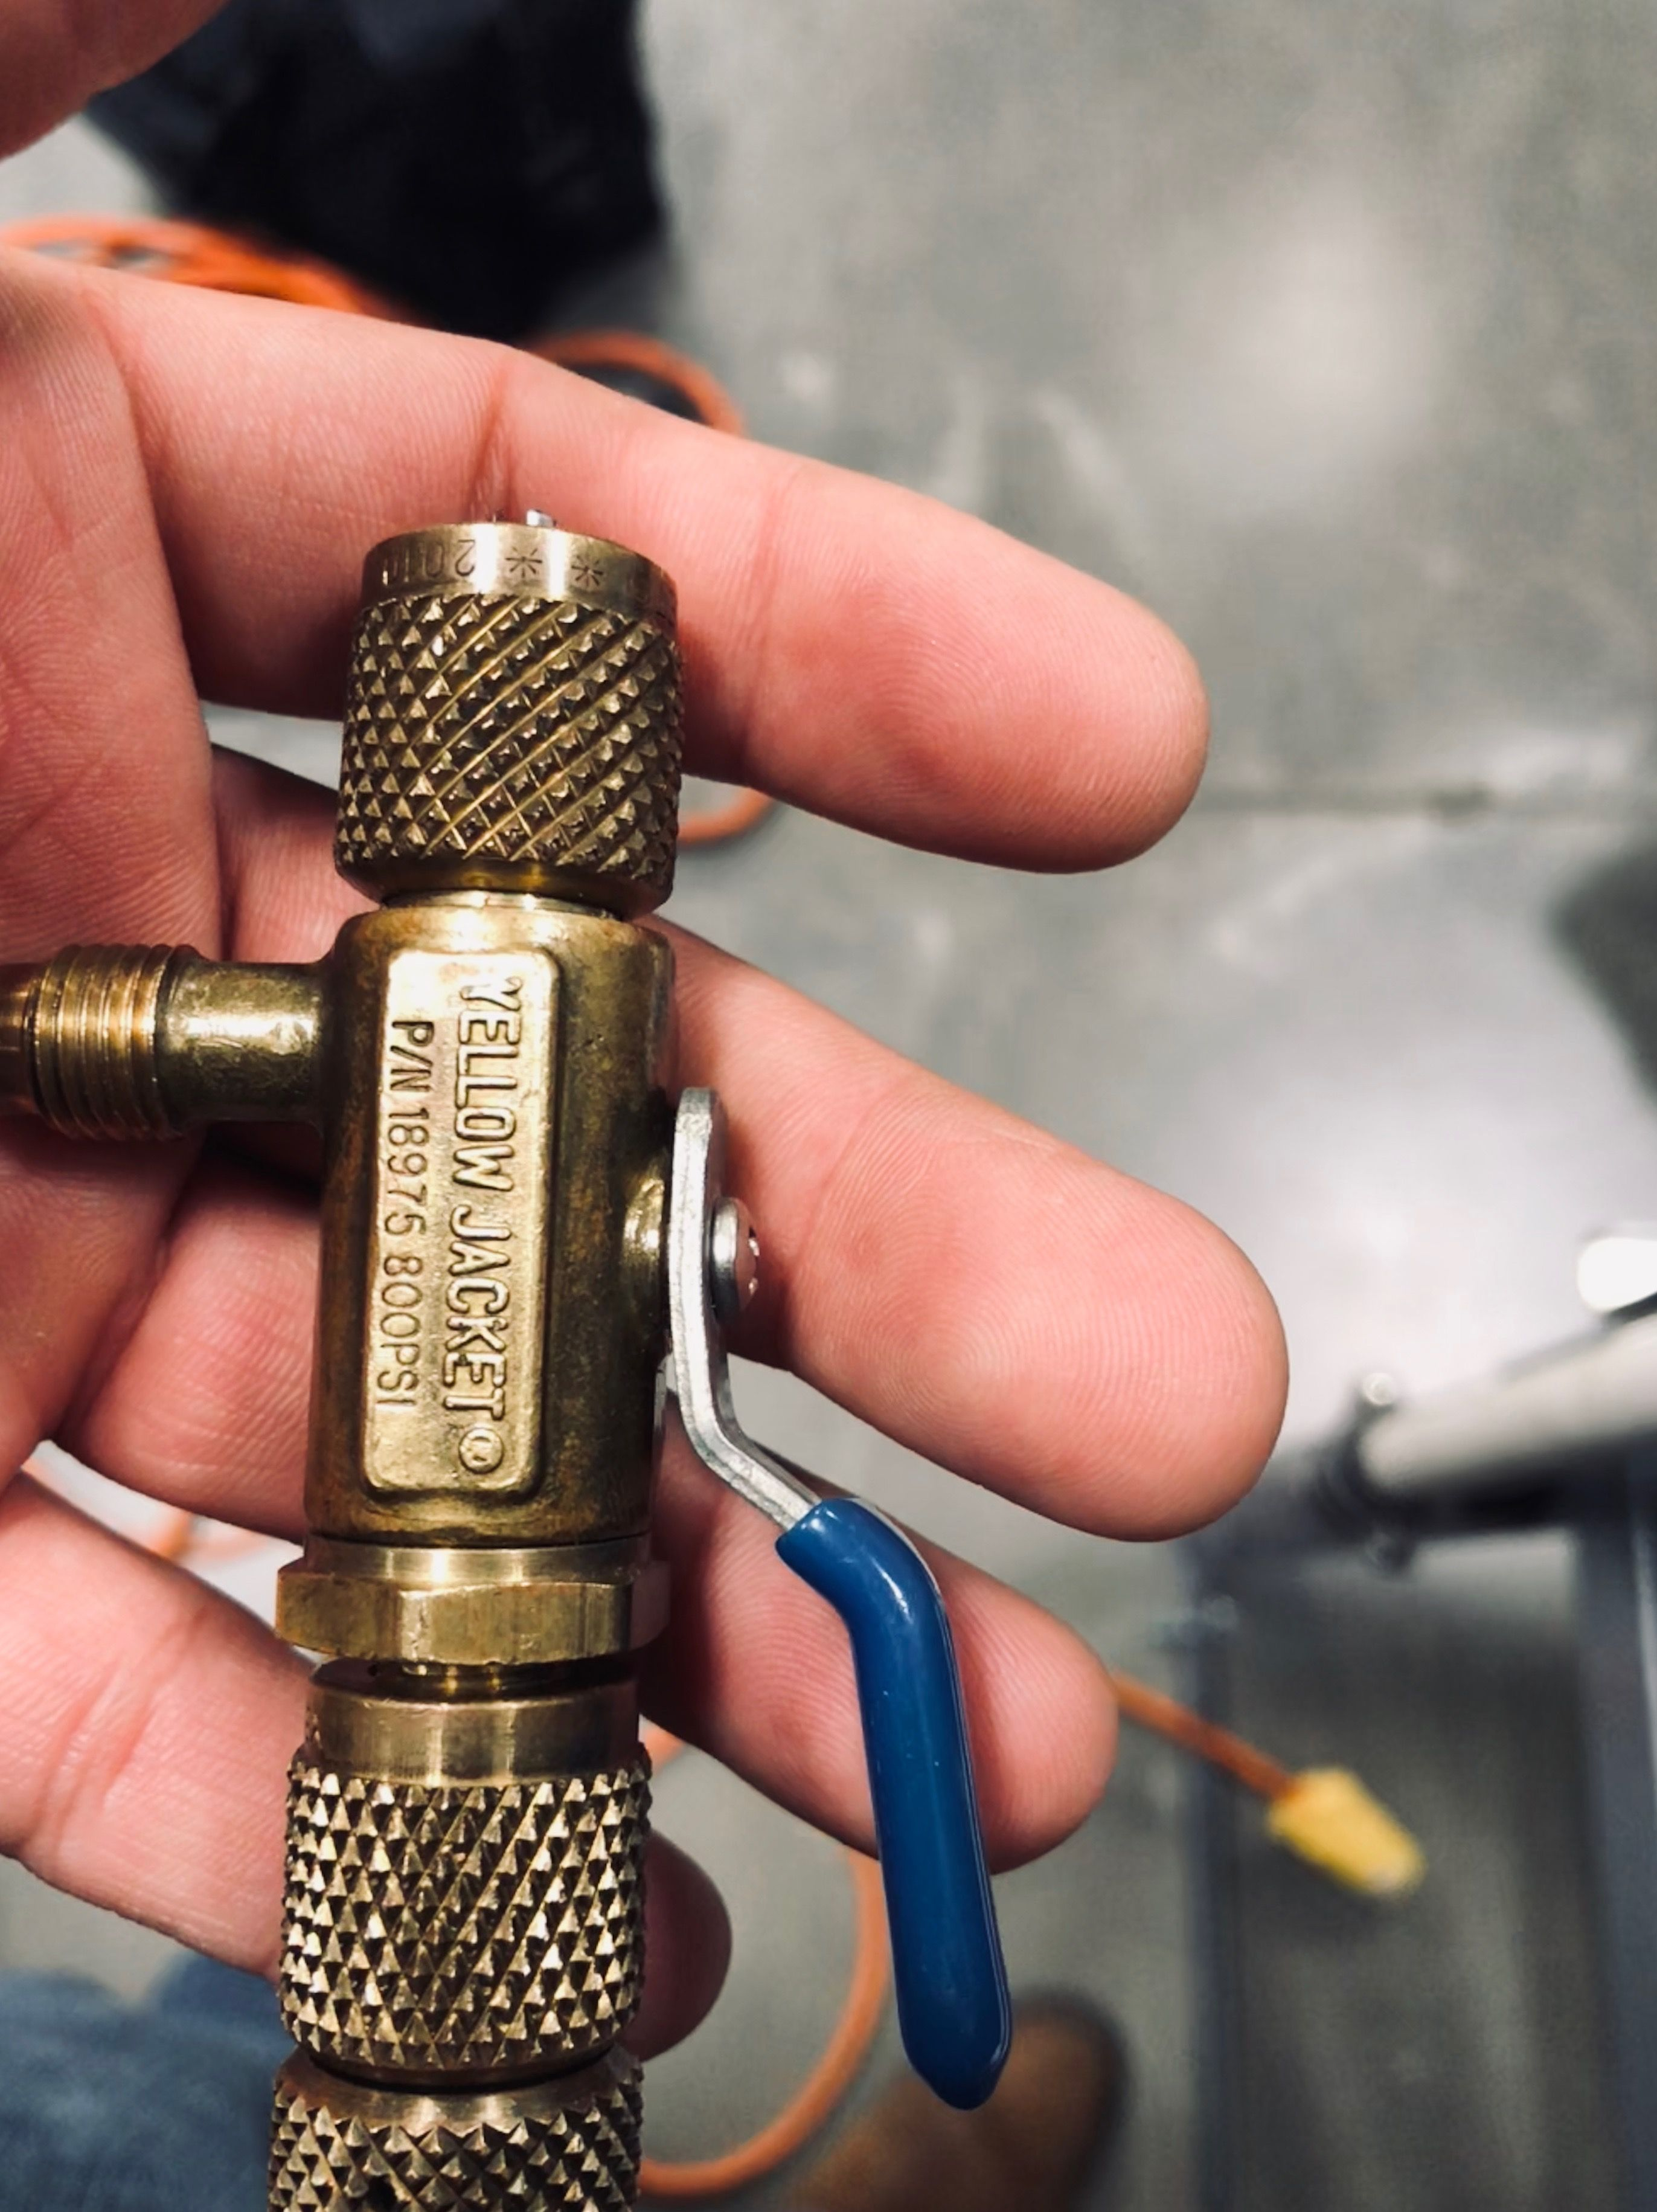 Leaking valve core? Easy removal without refrigerant